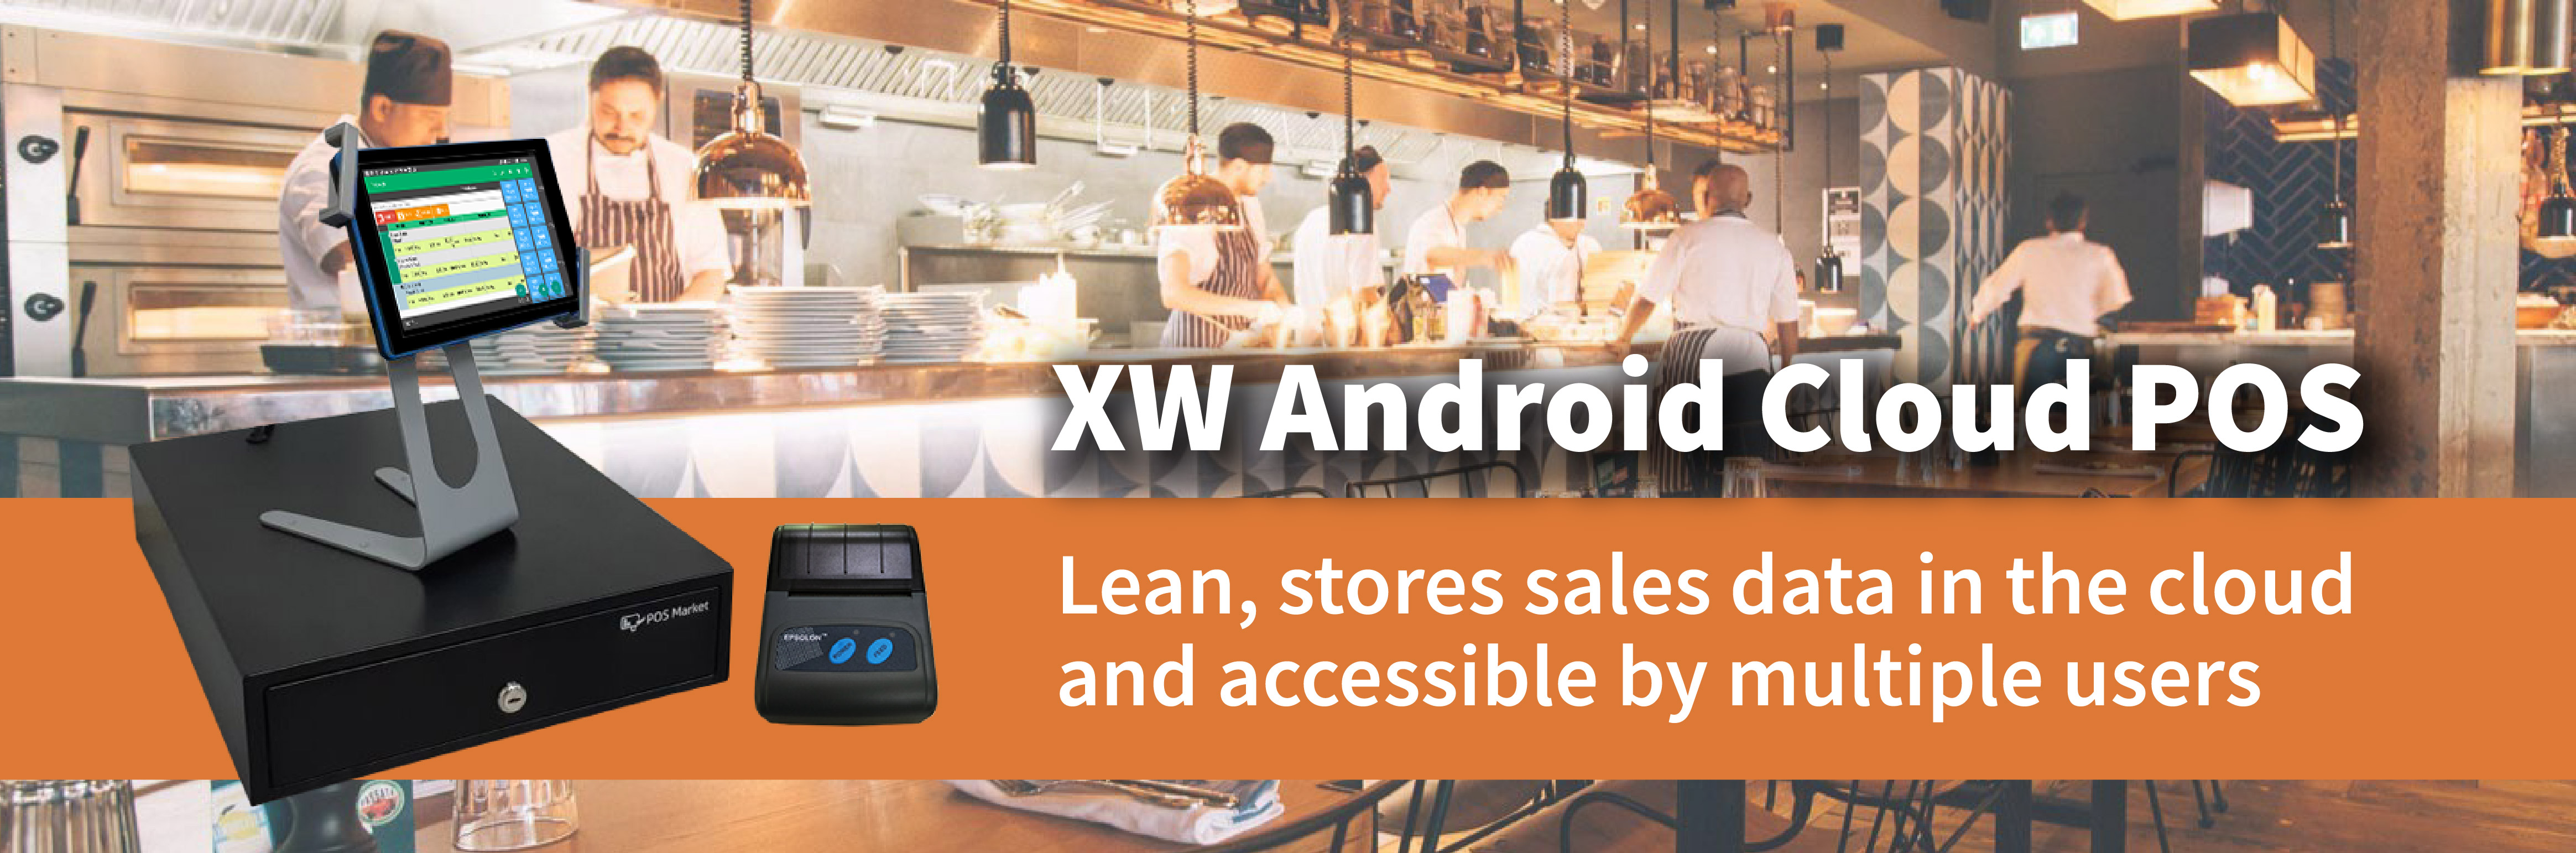 xw-cloud-pos-sg